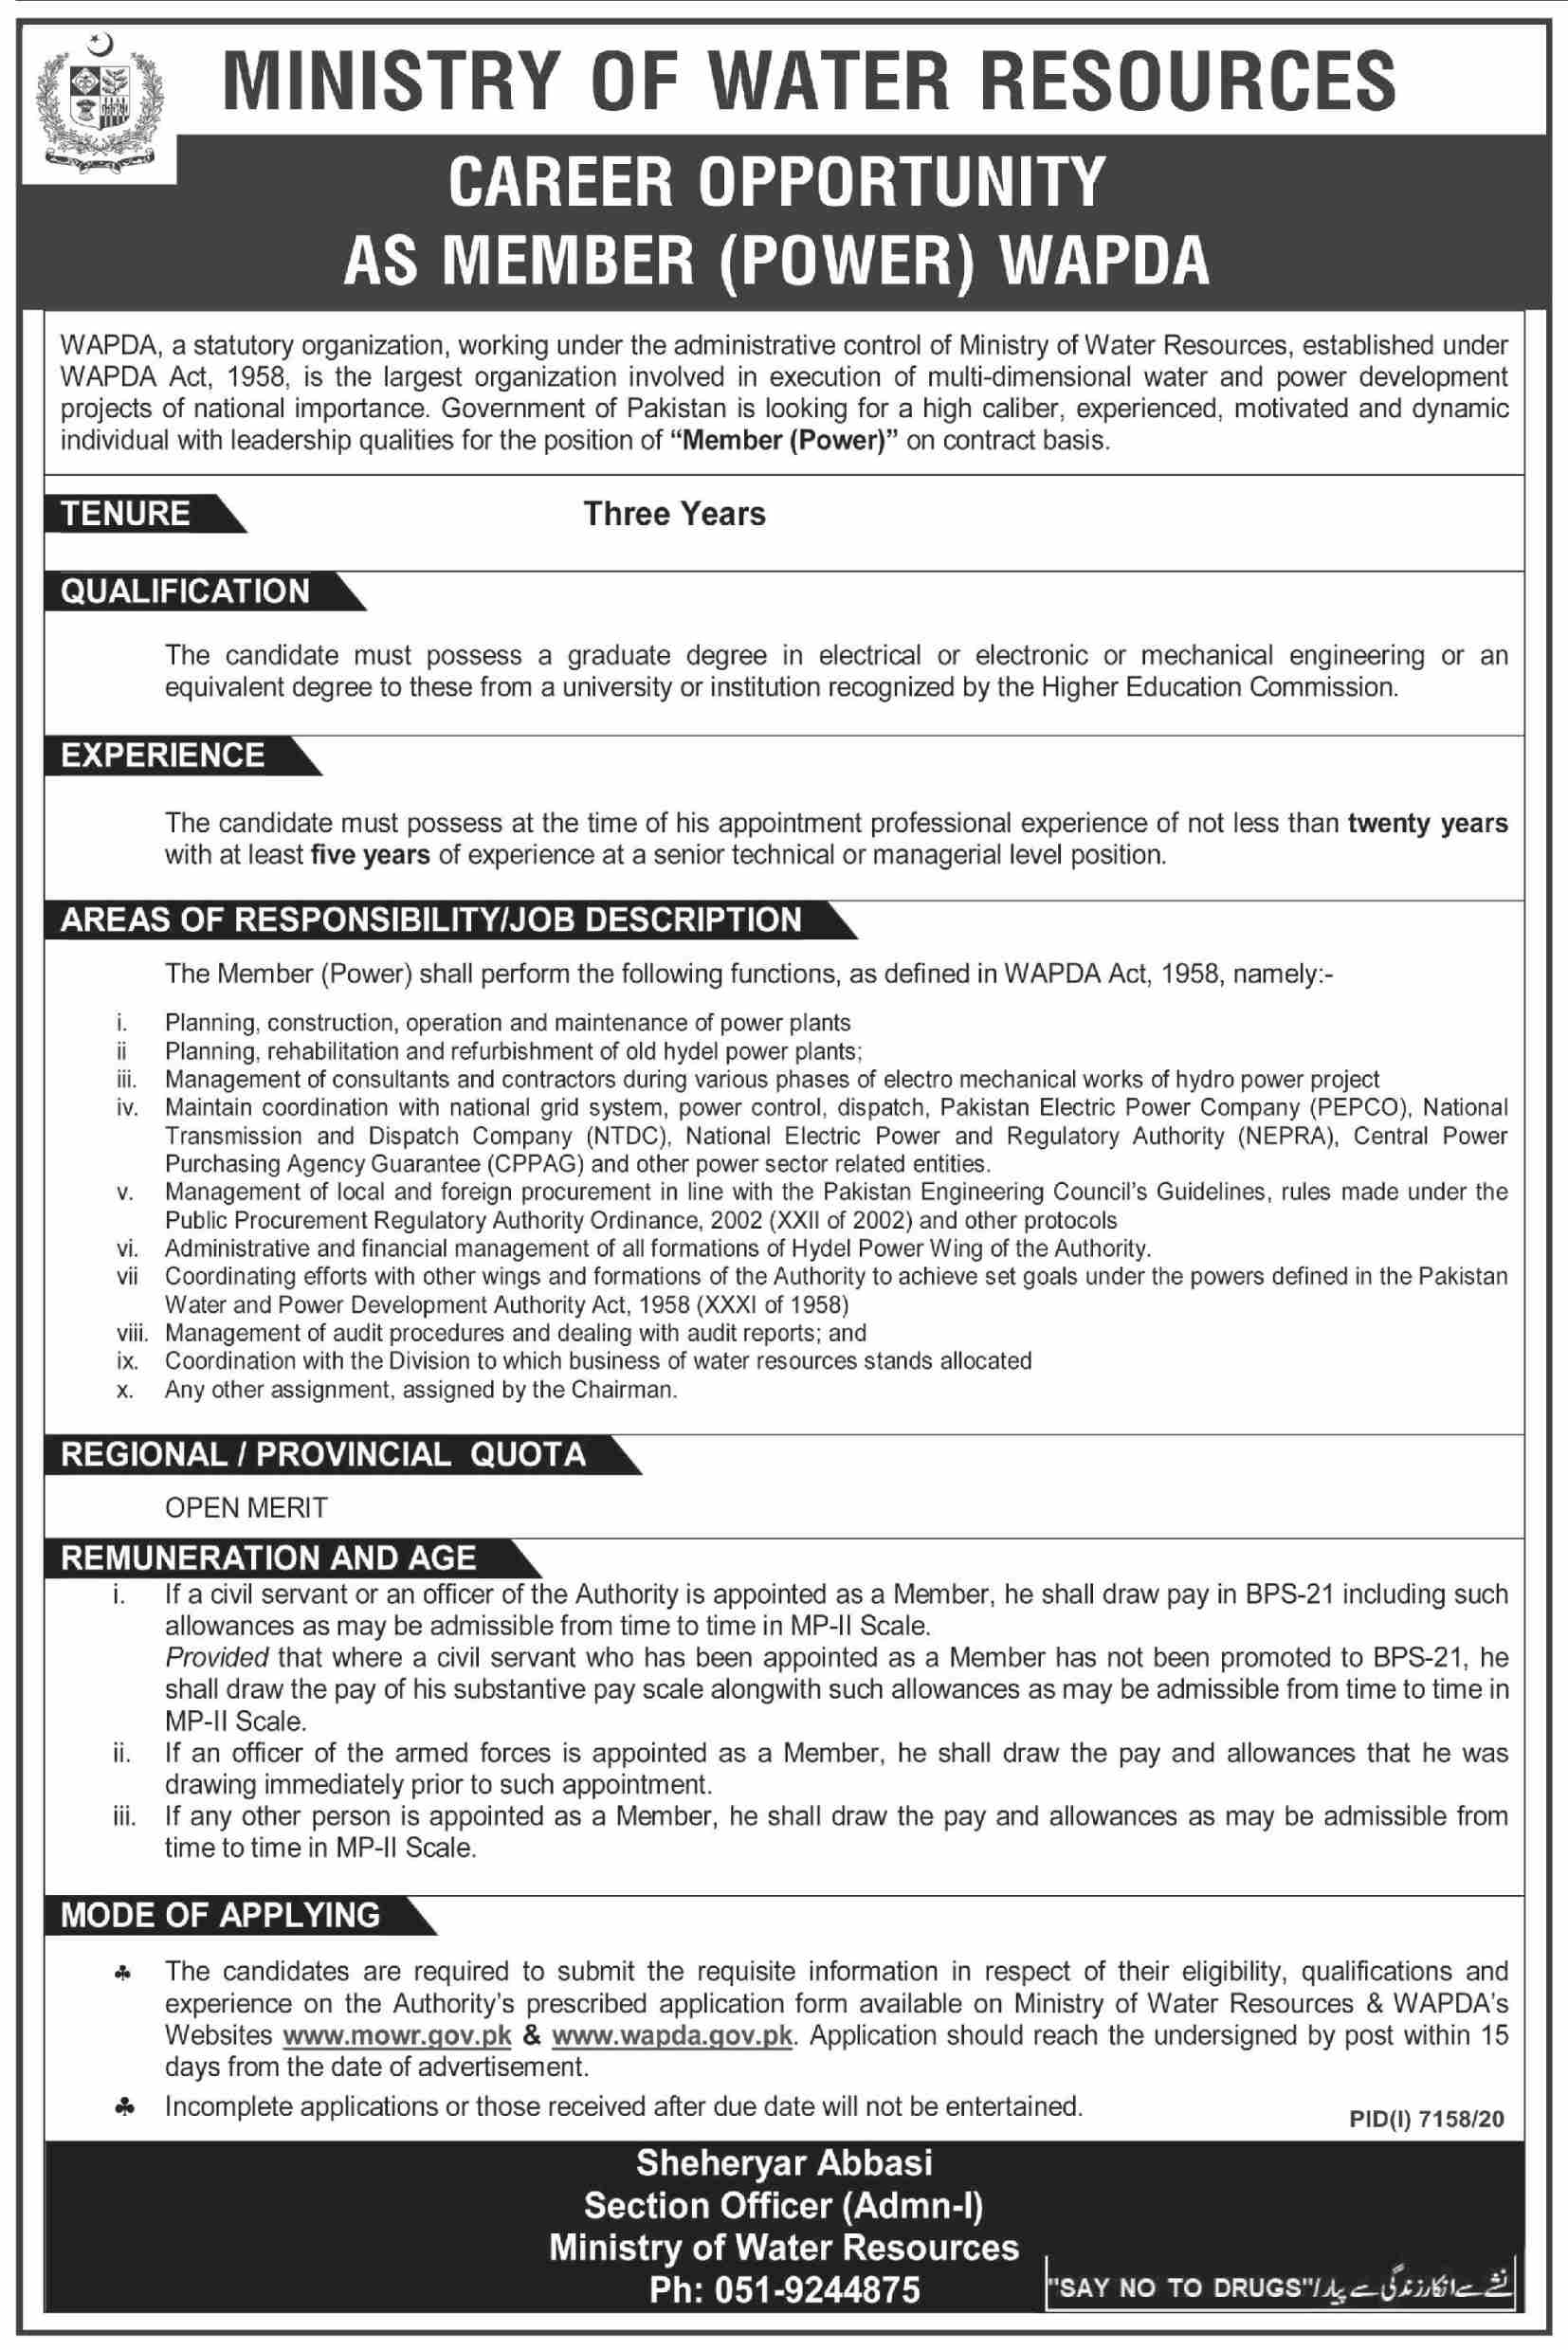 Ministry of Water Resources Power Member Jobs 2021